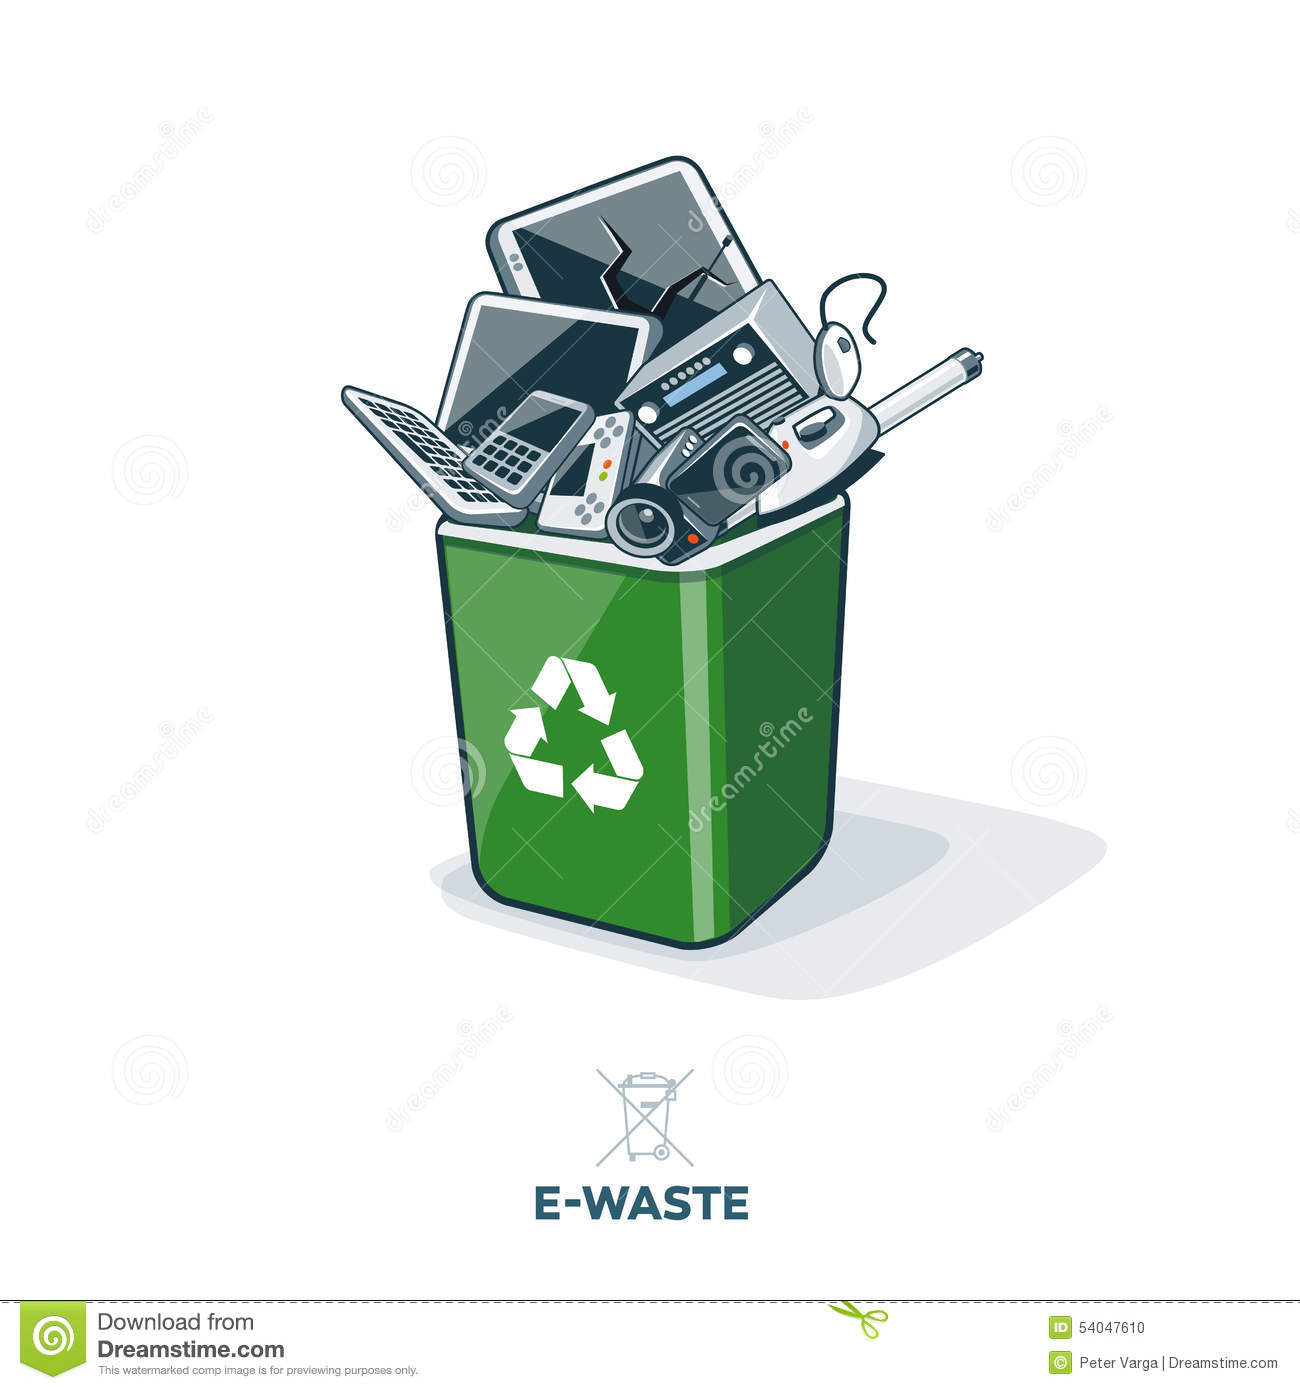 E-Waste In Recycling Bin Stock Vector - Image: 54047610